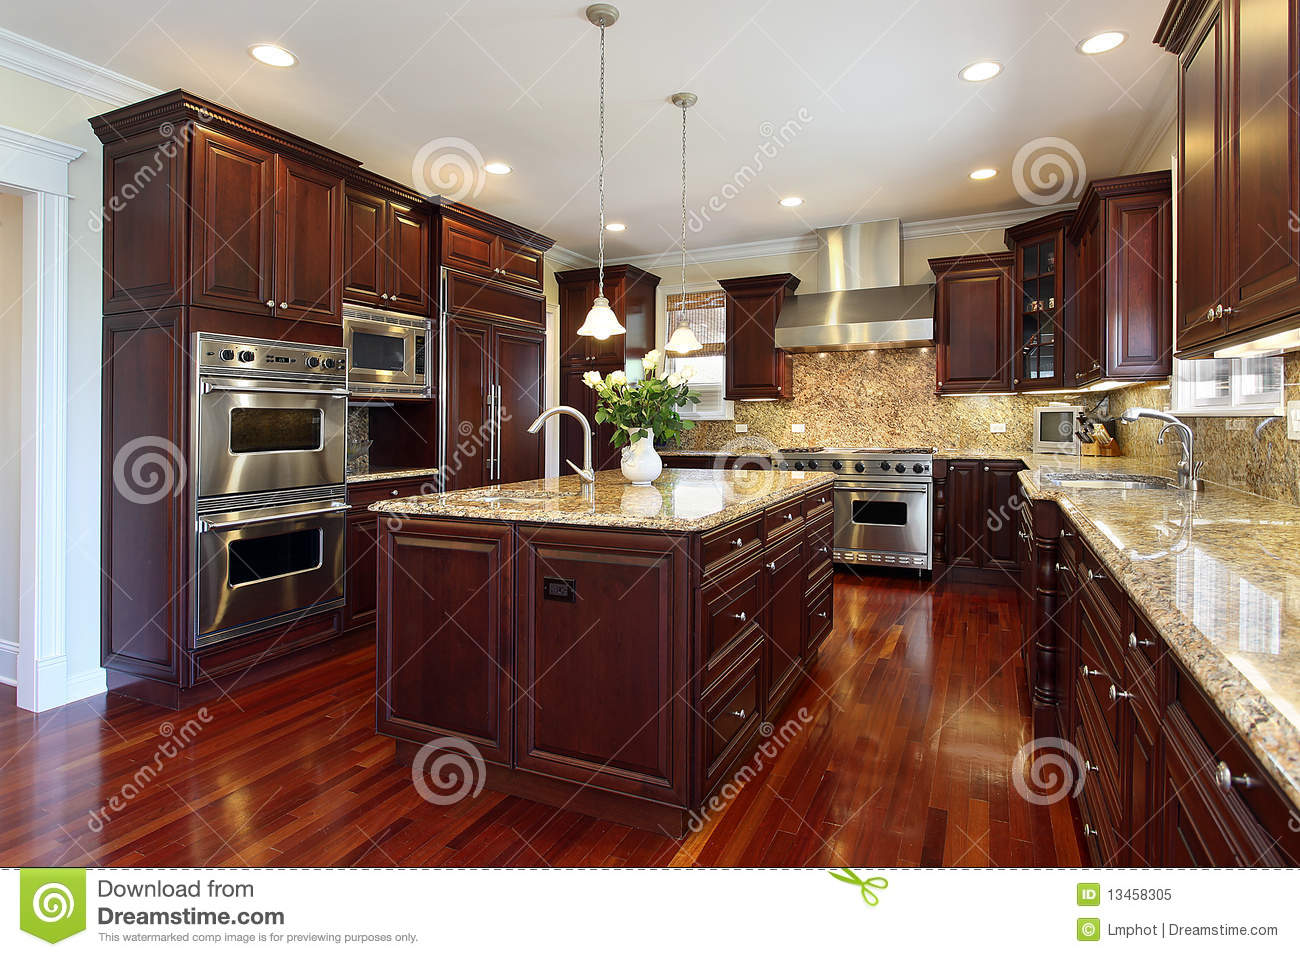 Design Decorate New House Kitchen With Cherry Wood Cabinetry Royalty Free Stock